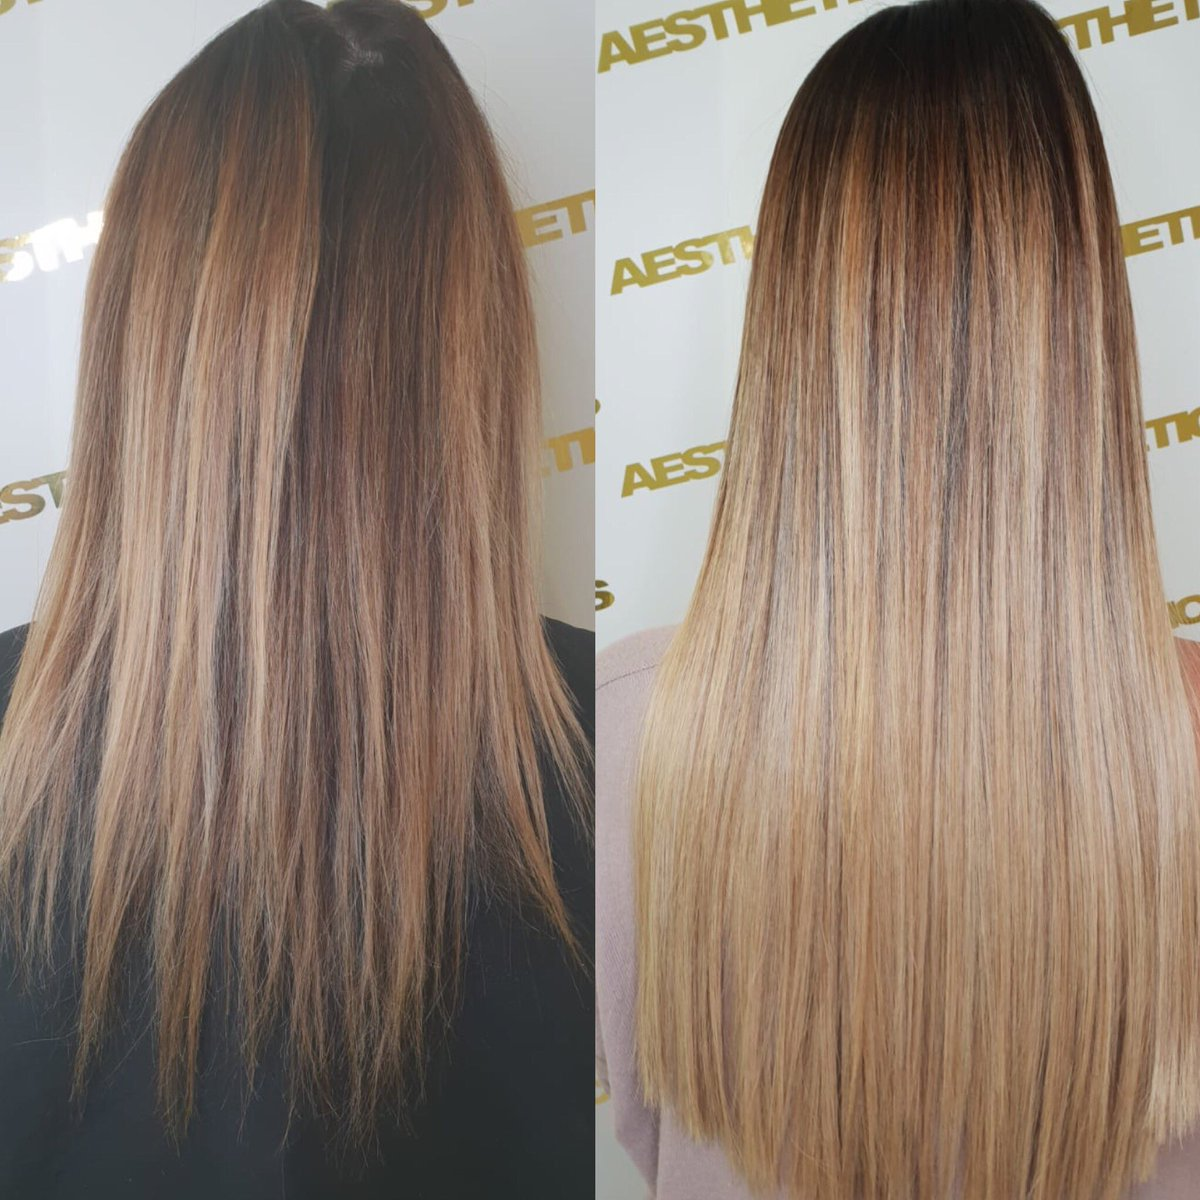 Aesthetics Solihull On Twitter See How Greatlengthsuk Hair